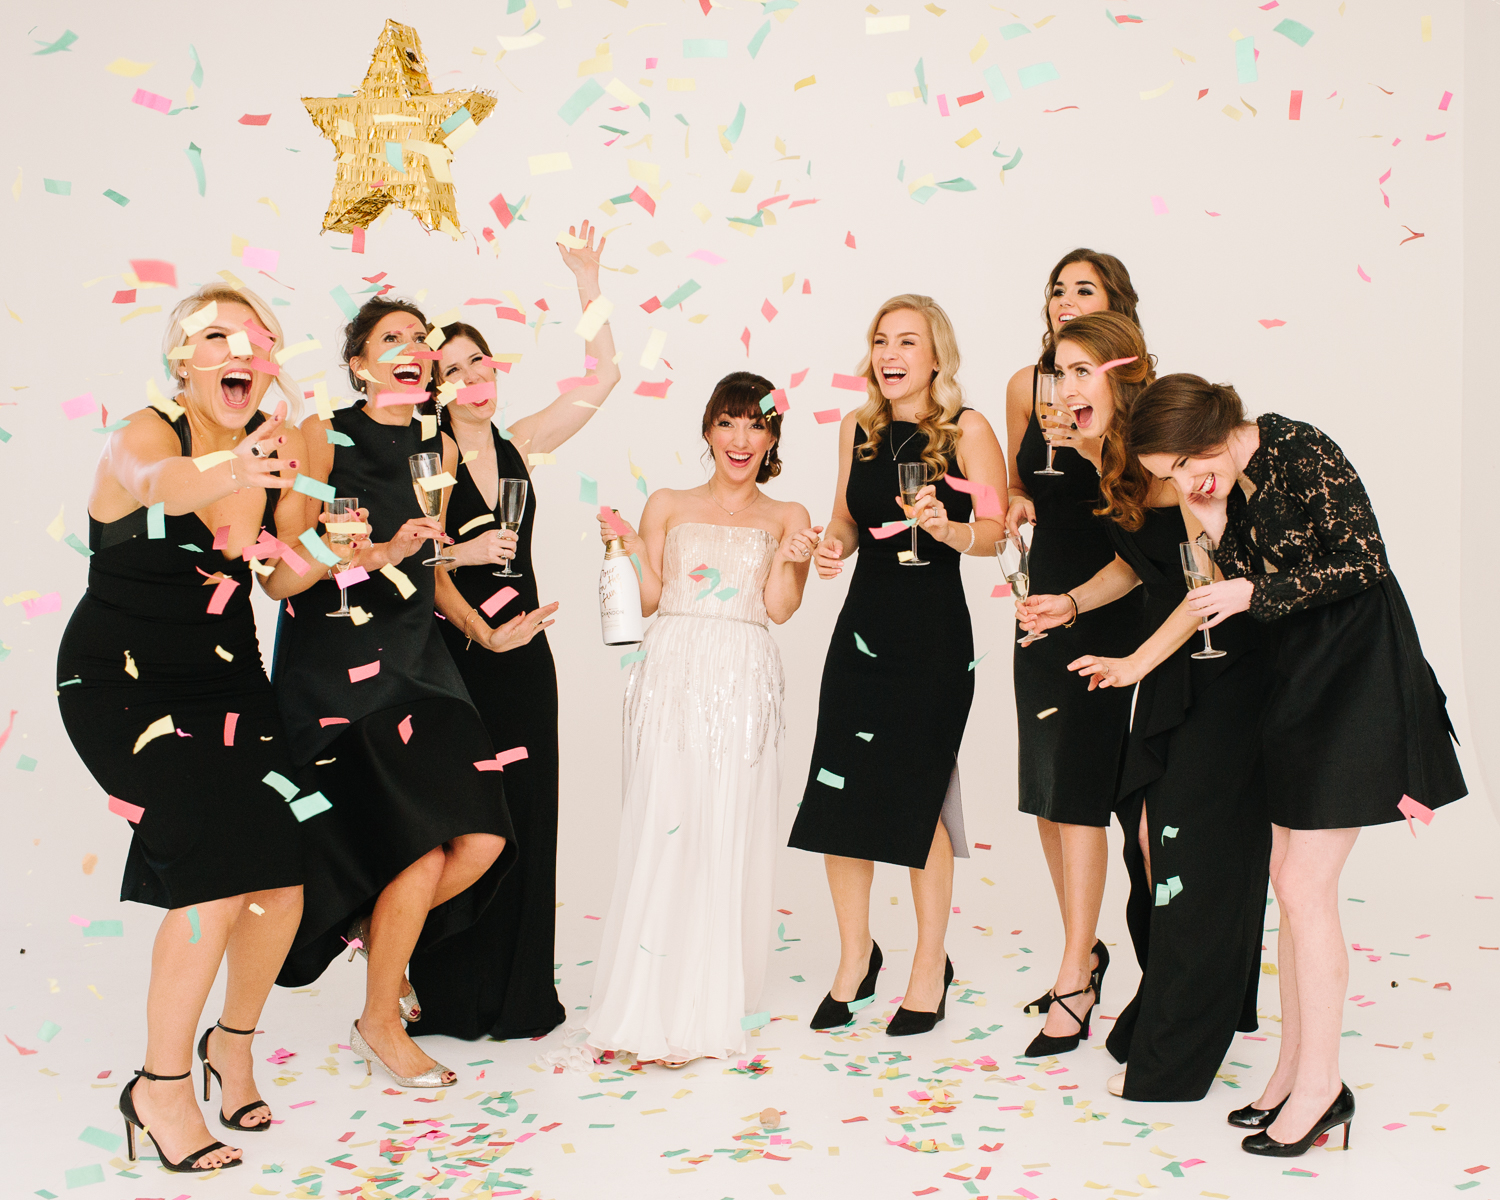 tara mcmullen photography four seasons toronto wedding photos jesi haack design wedding love by lynzie wedding confetti and champagne-013-2